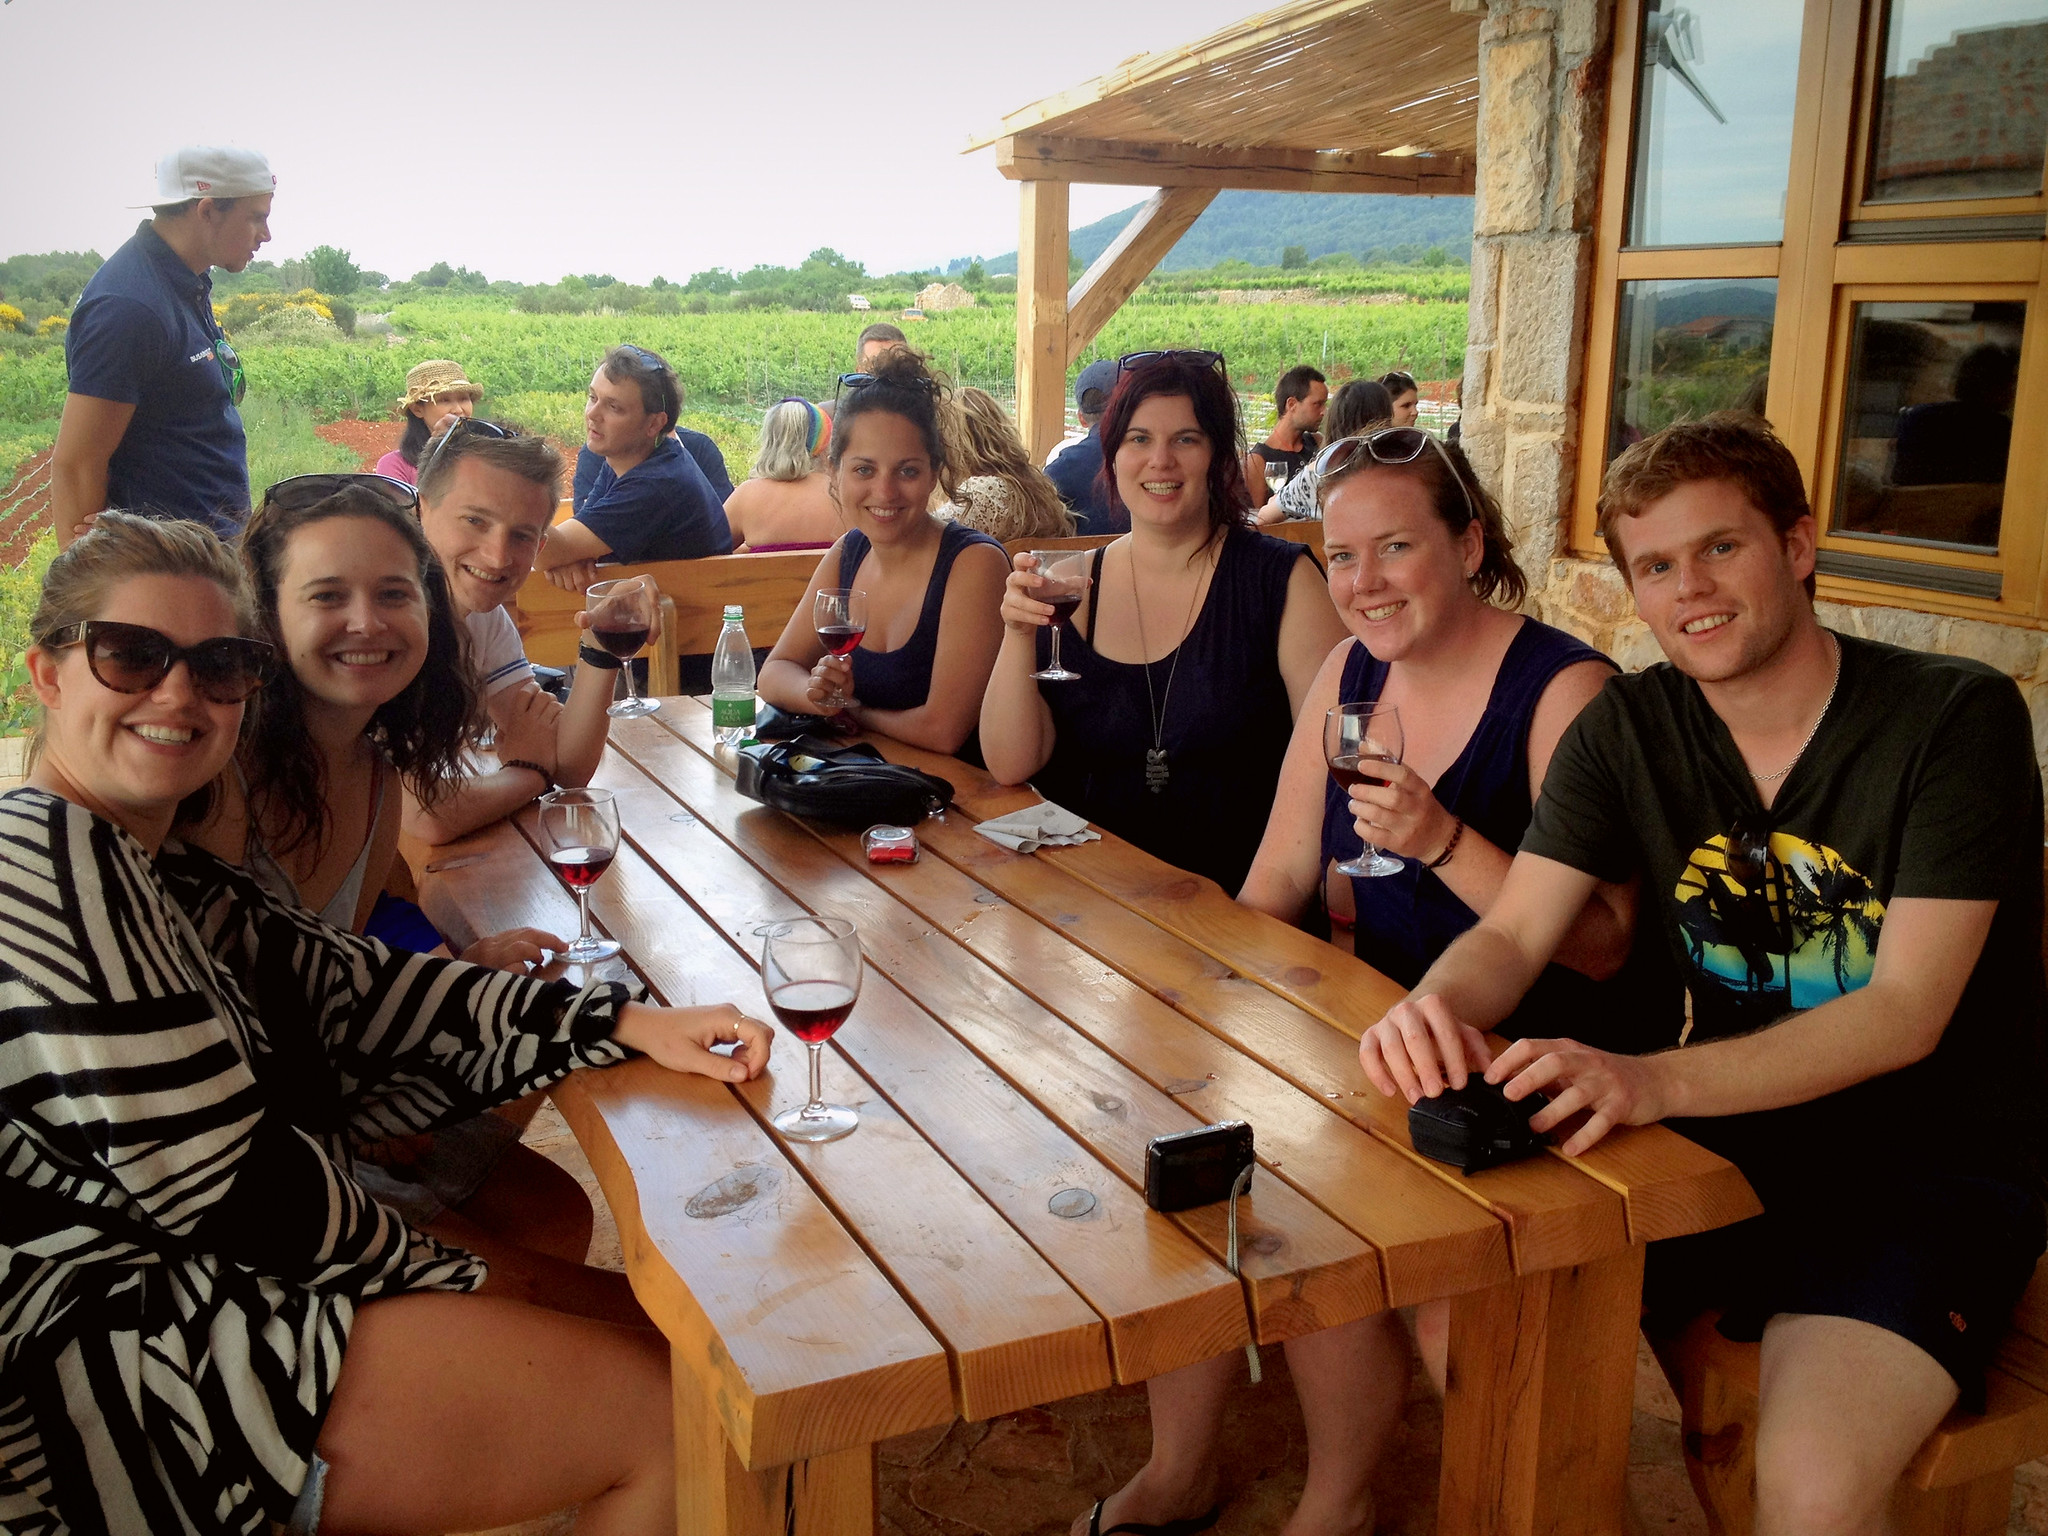 Kate and several friends surround a wooden picnic table in a vineyard, glasses of red wine in their hands.